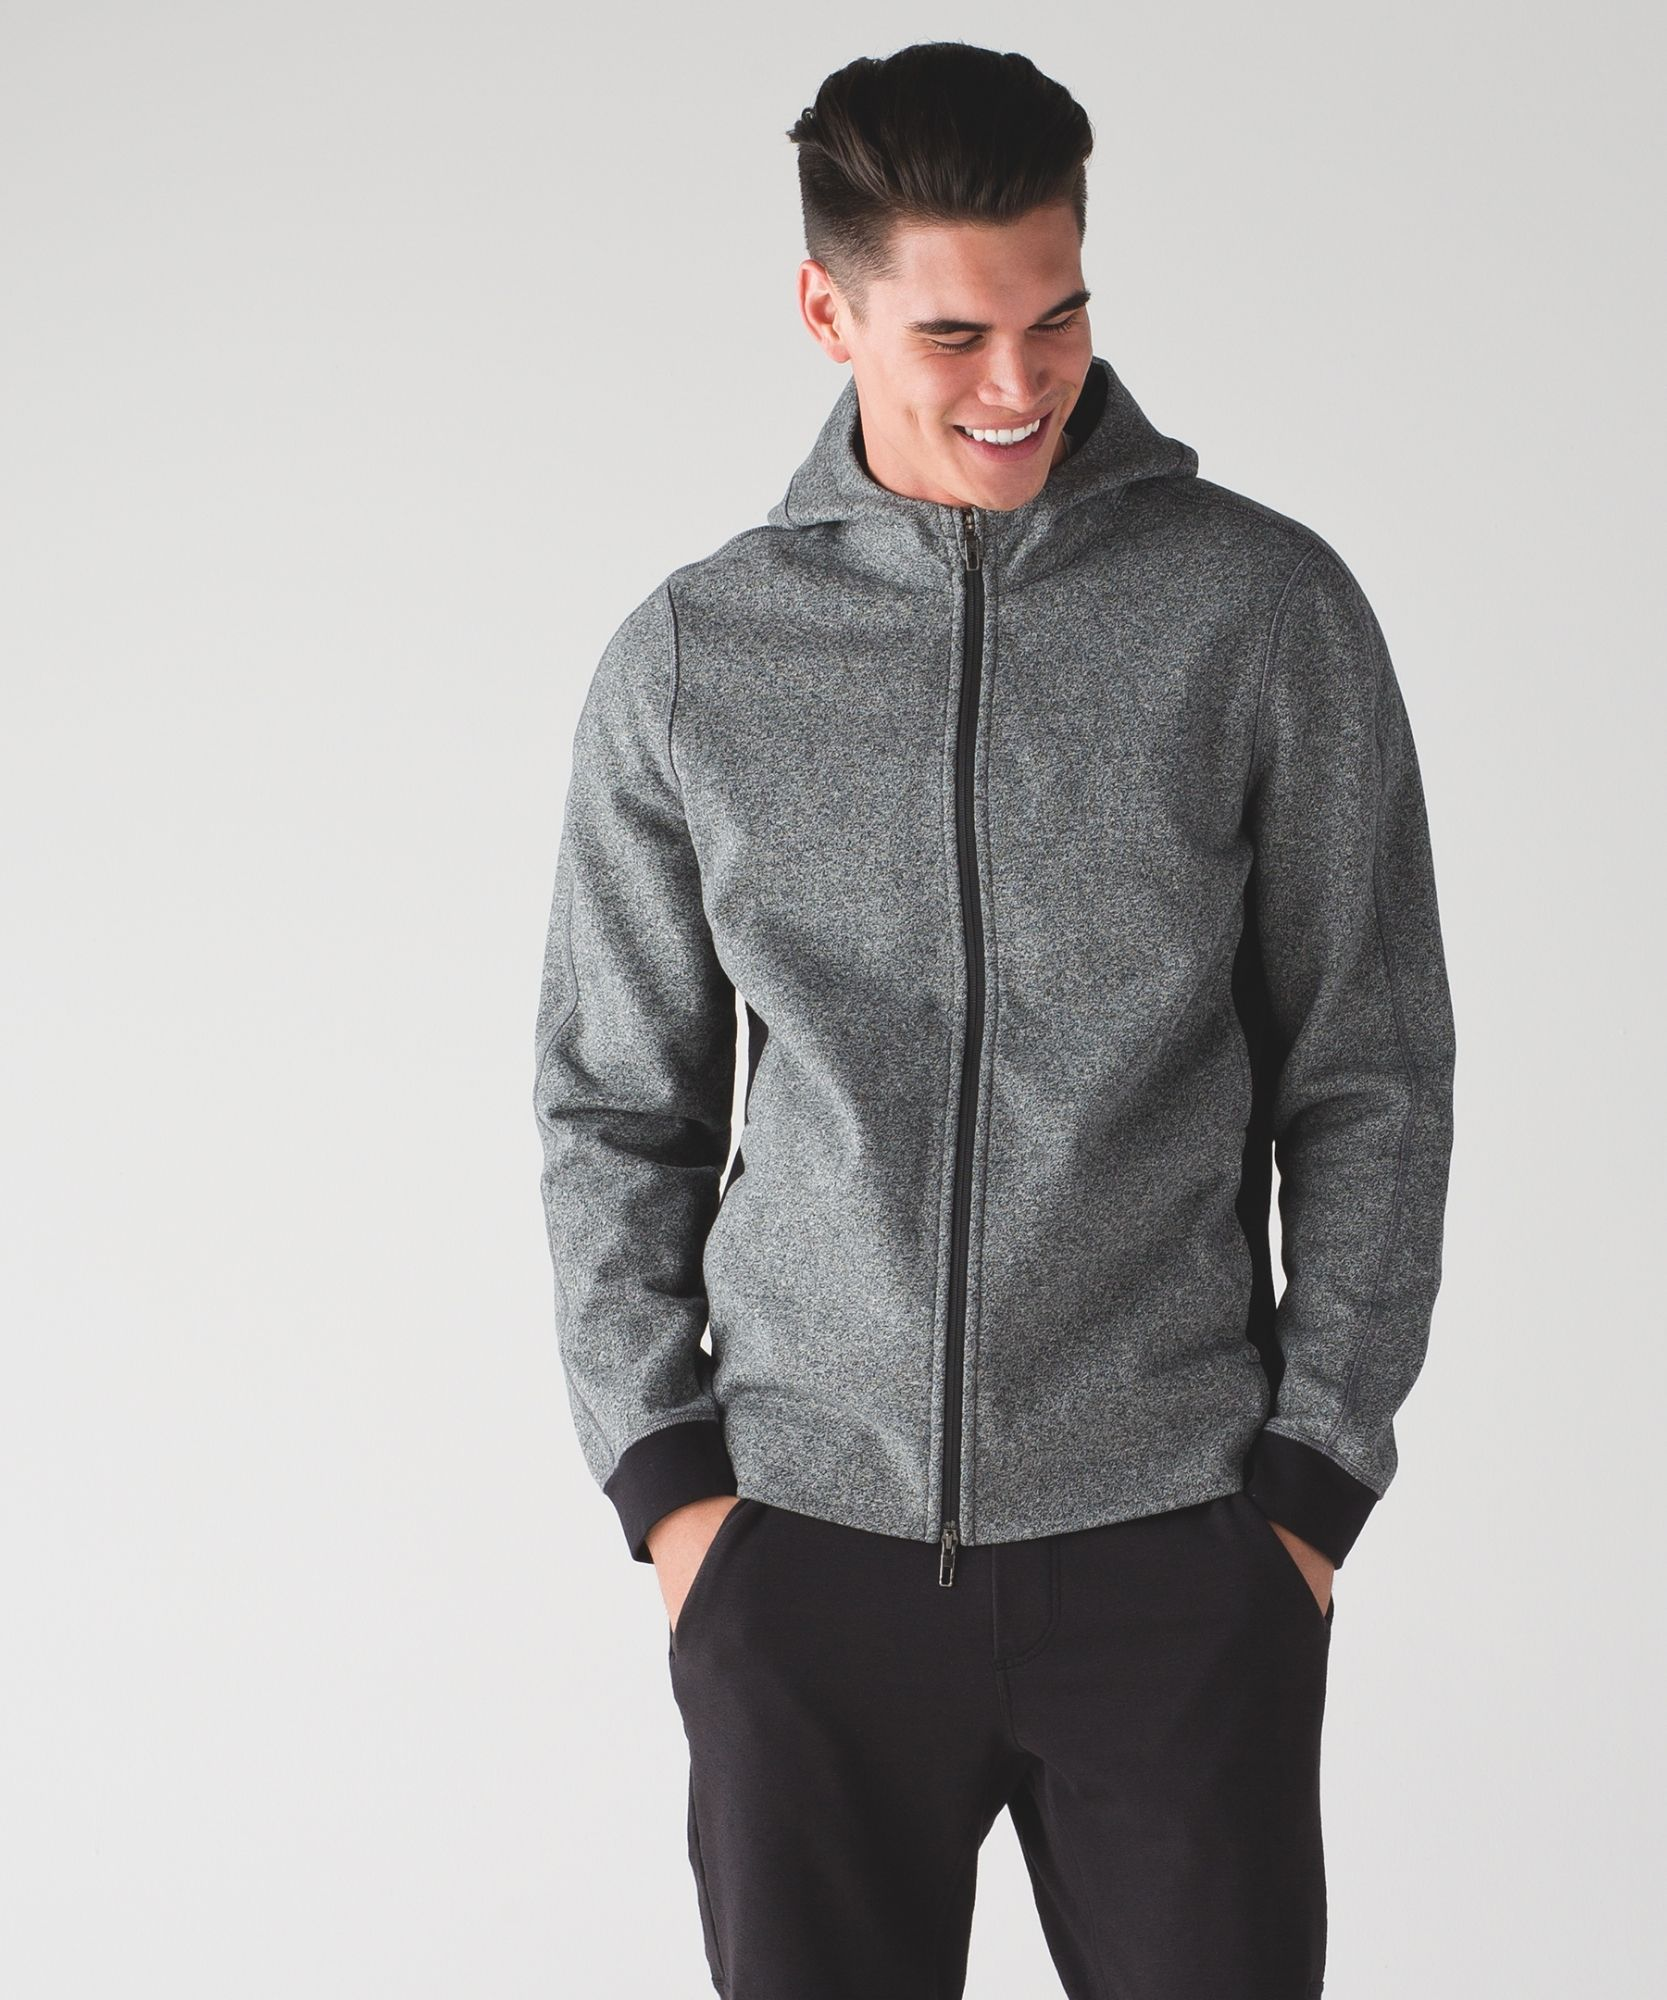 Men S Workout Hoodie Heavyweight Hoodie Lululemon Workout Hoodie Mens Fashion Suits Gents Winter Collection